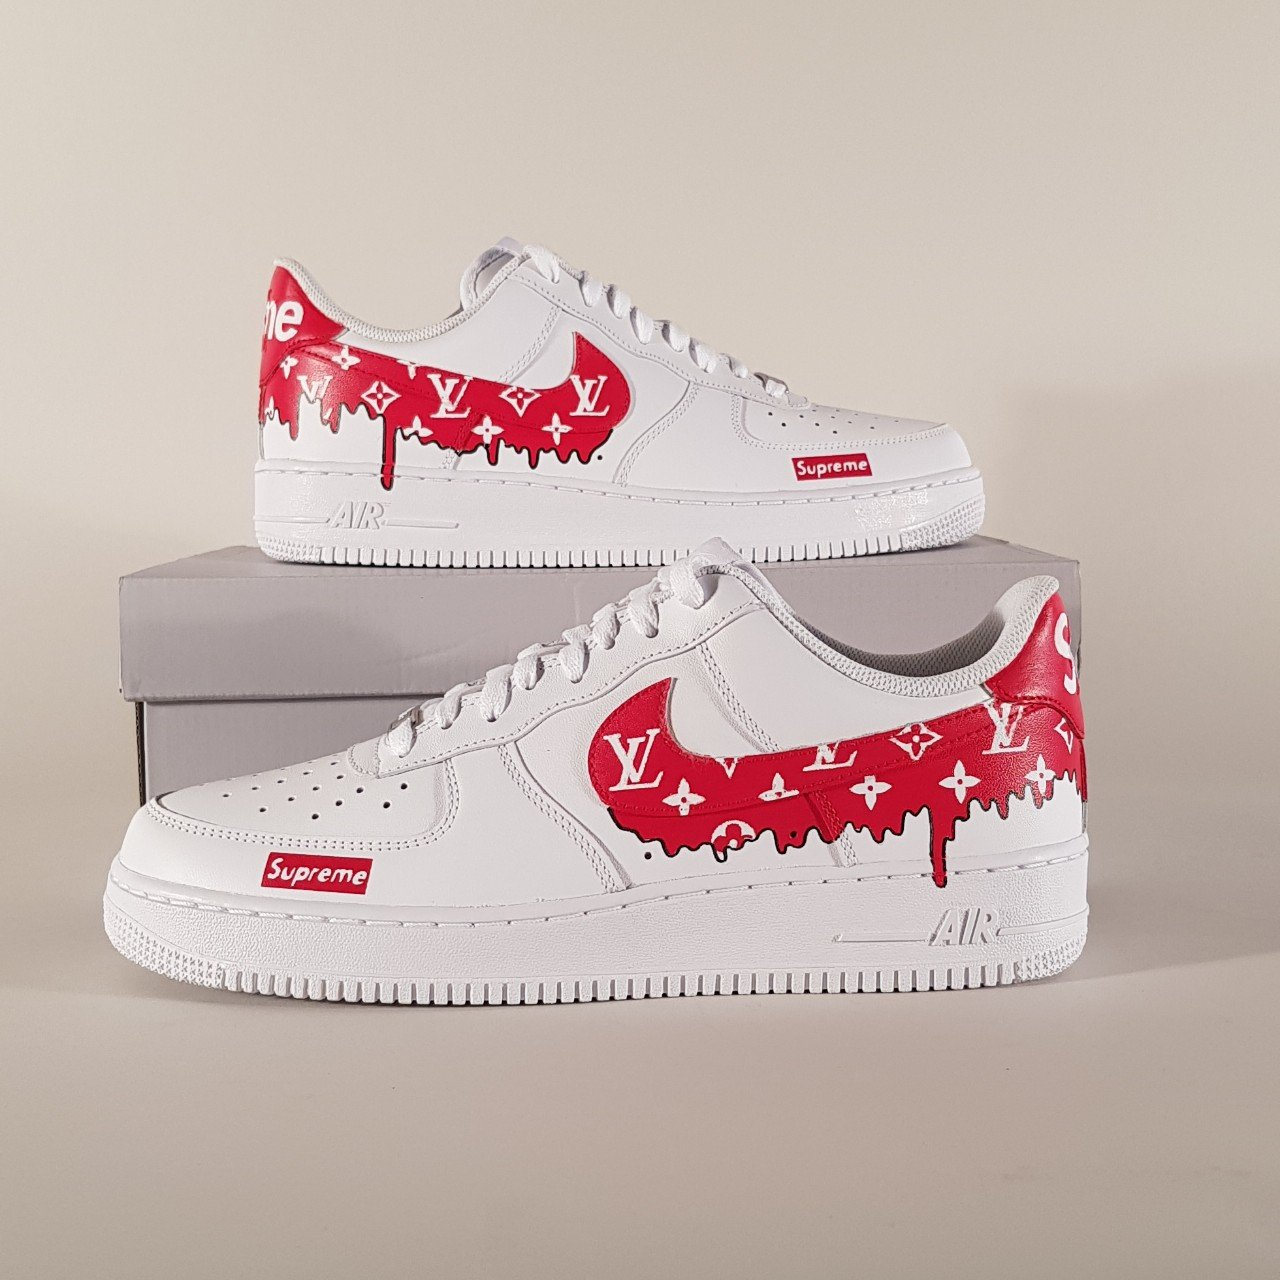 66c8a3a0d31 - Custom Nike Air Force Ones Louis Vuitton x Supreme - Pure - Depop